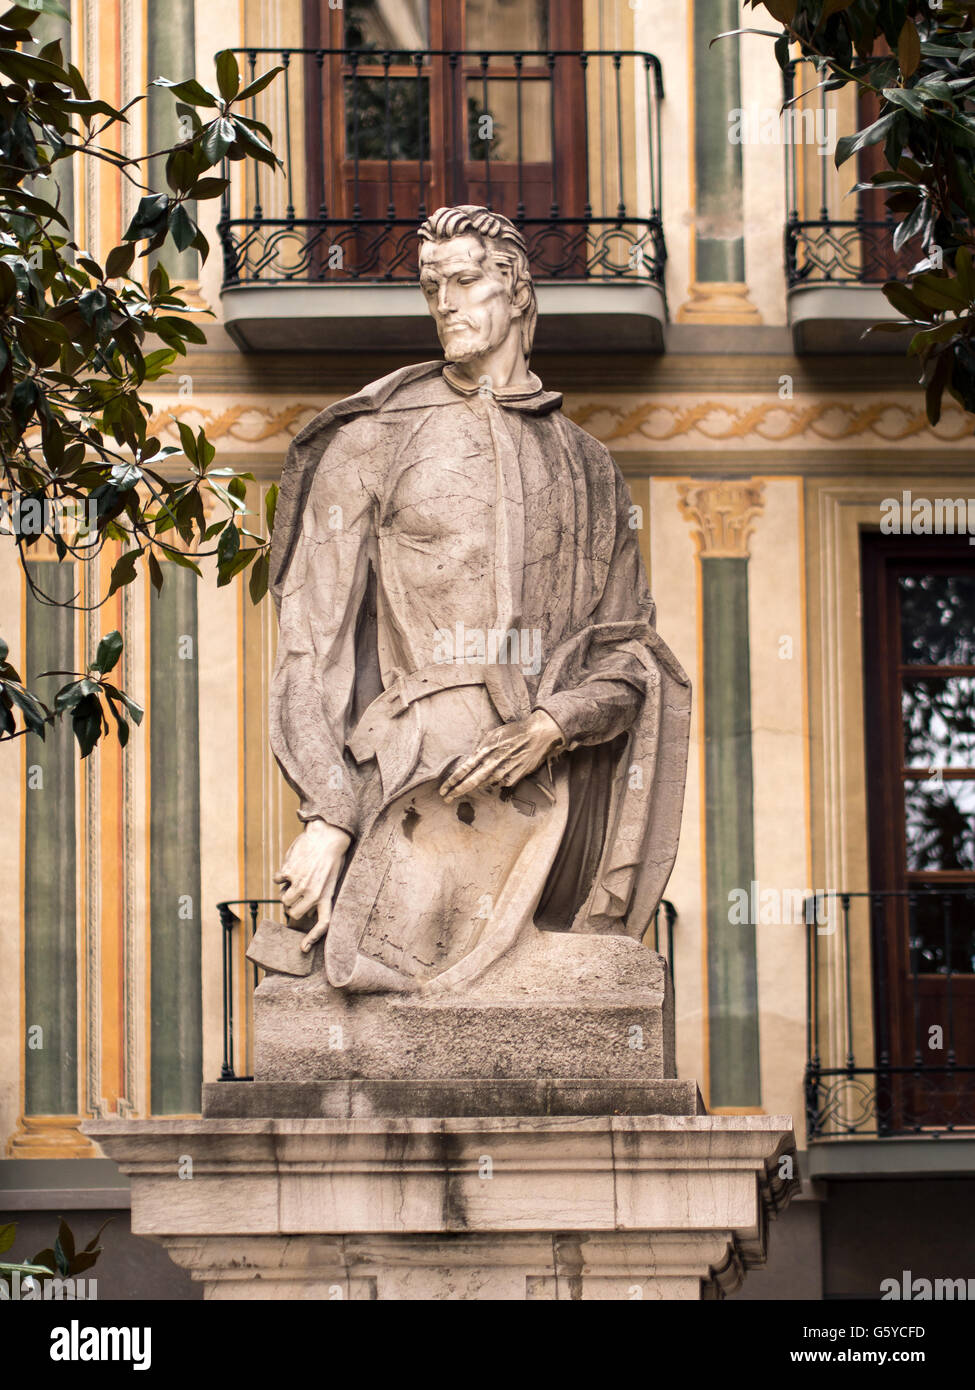 SEVILLE, SPAIN:  Statue of  Spanish painter, architect and sculptor Alonso Cano - Stock Image